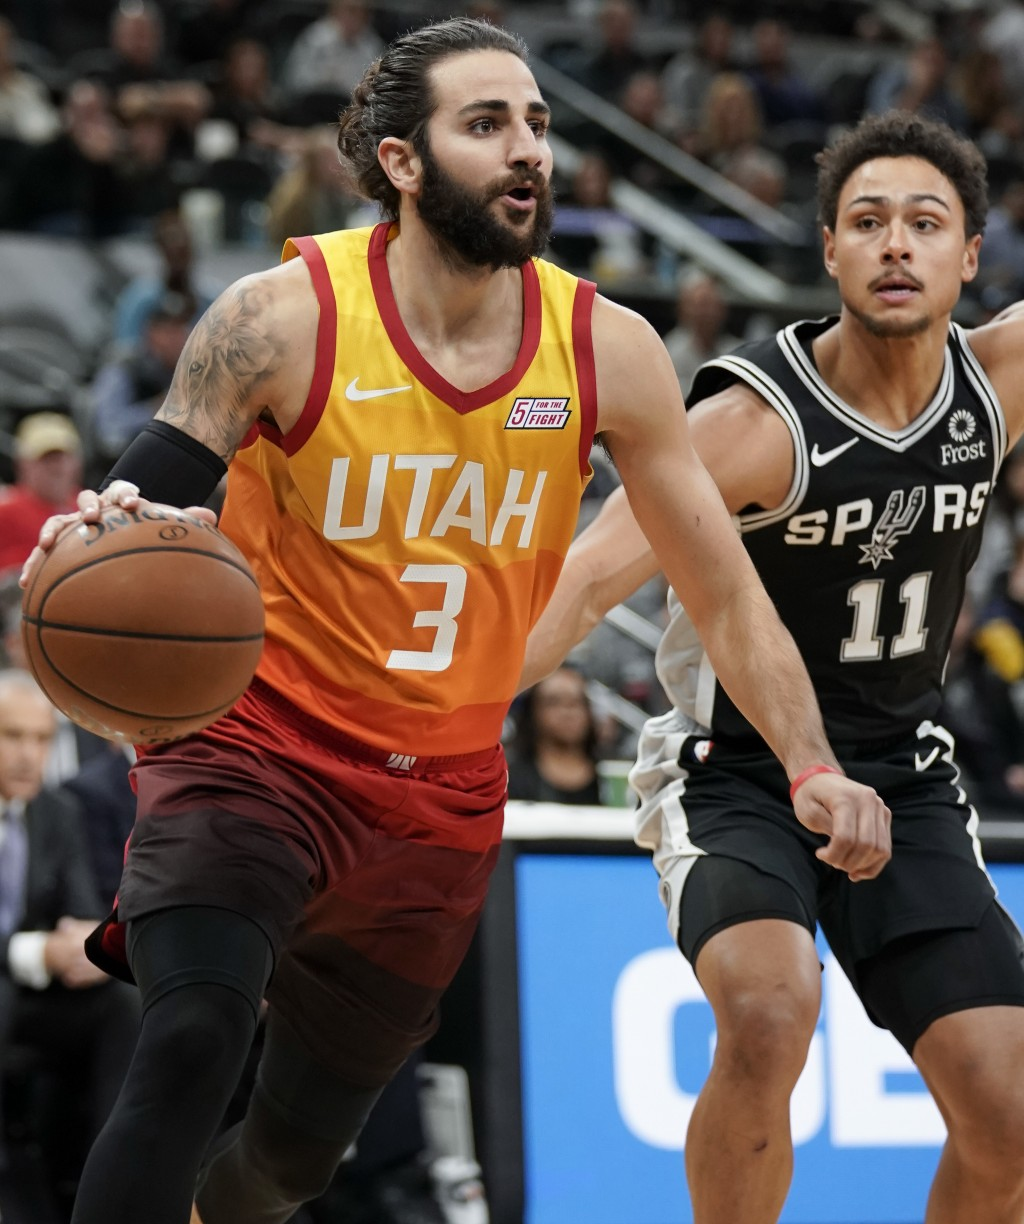 Utah Jazz guard Ricky Rubio (3) drives around San Antonio Spurs guard Bryn Forbes during the first half of an NBA basketball game, Sunday, Dec. 9, 201